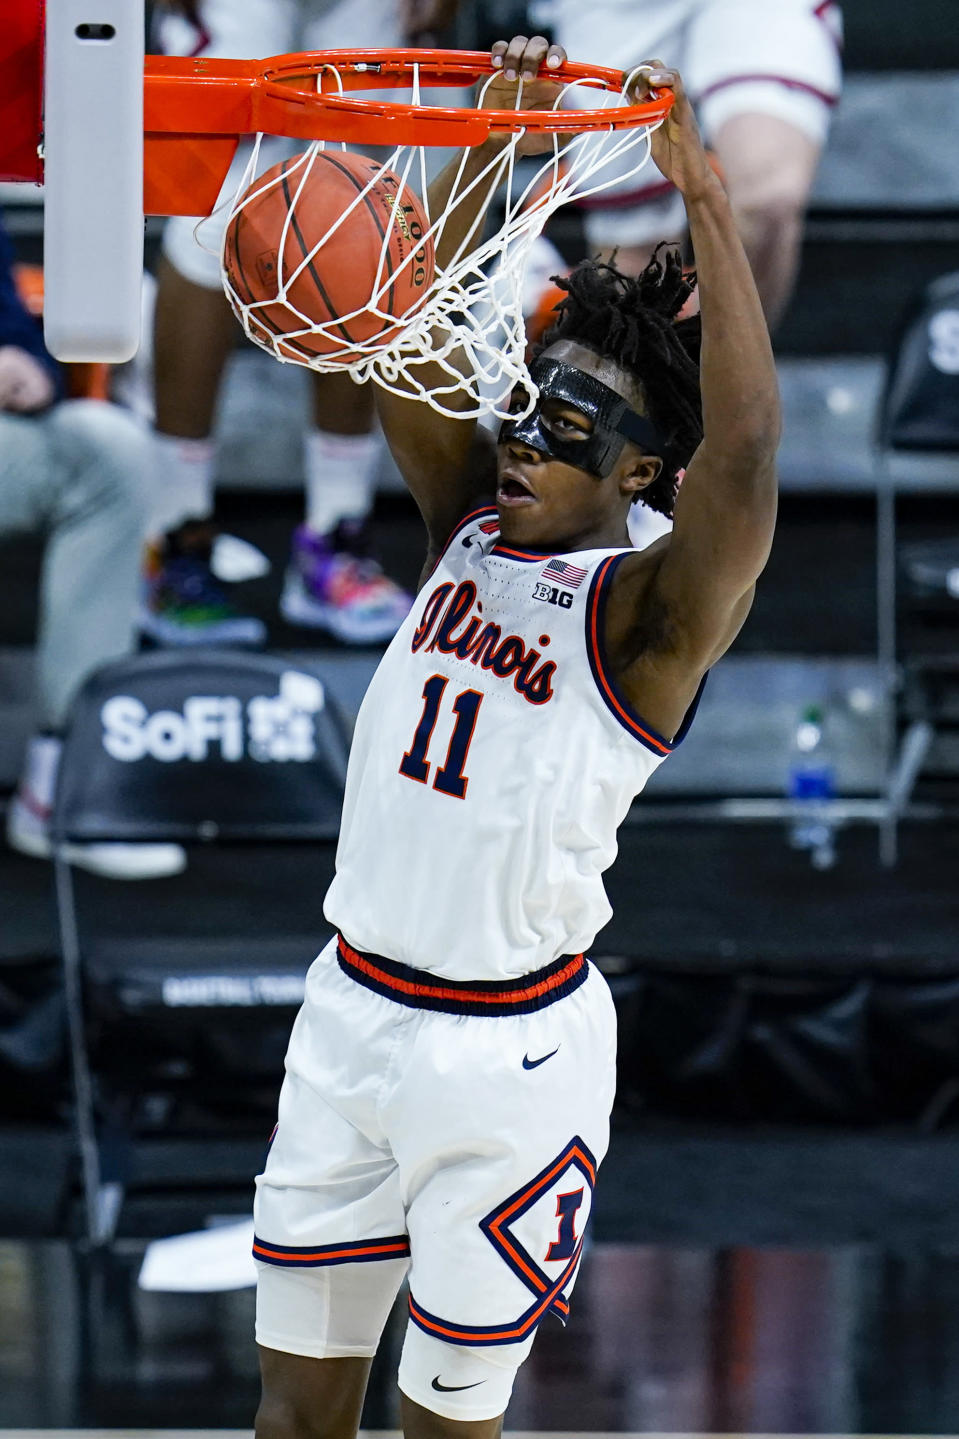 FILE - Illinois guard Ayo Dosunmu (11) dunks against Iowa in the second half of an NCAA college basketball game at the Big Ten Conference tournament in Indianapolis, in this Saturday, March 13, 2021, file photo. Dosunmu has made The Associated Press All-America first team, announced Tuesday, March 16, 2021. (AP Photo/Michael Conroy, File)